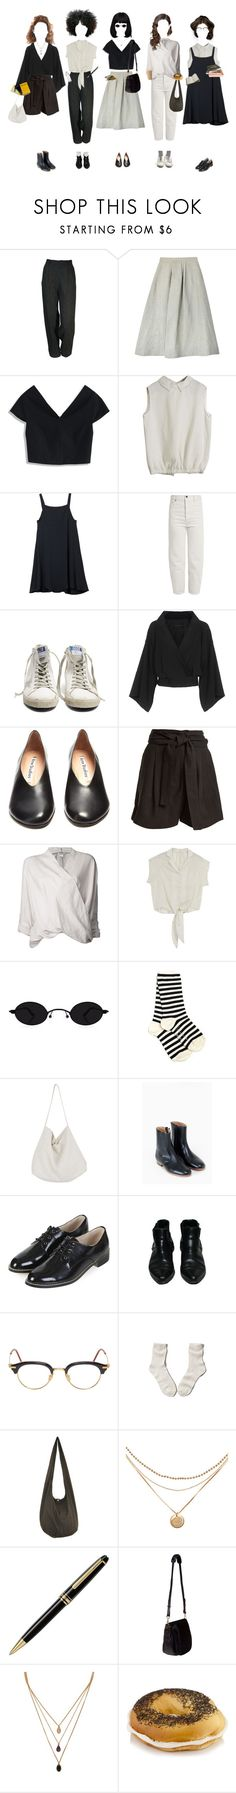 """""""Back To College They Go"""" by silentmoonchild ❤ liked on Polyvore featuring Samuji, Chicwish, RVCA, Vetements, Golden Goose, Plein Sud, Acne Studios, Apiece Apart, Helmut Lang and Yohji Yamamoto"""